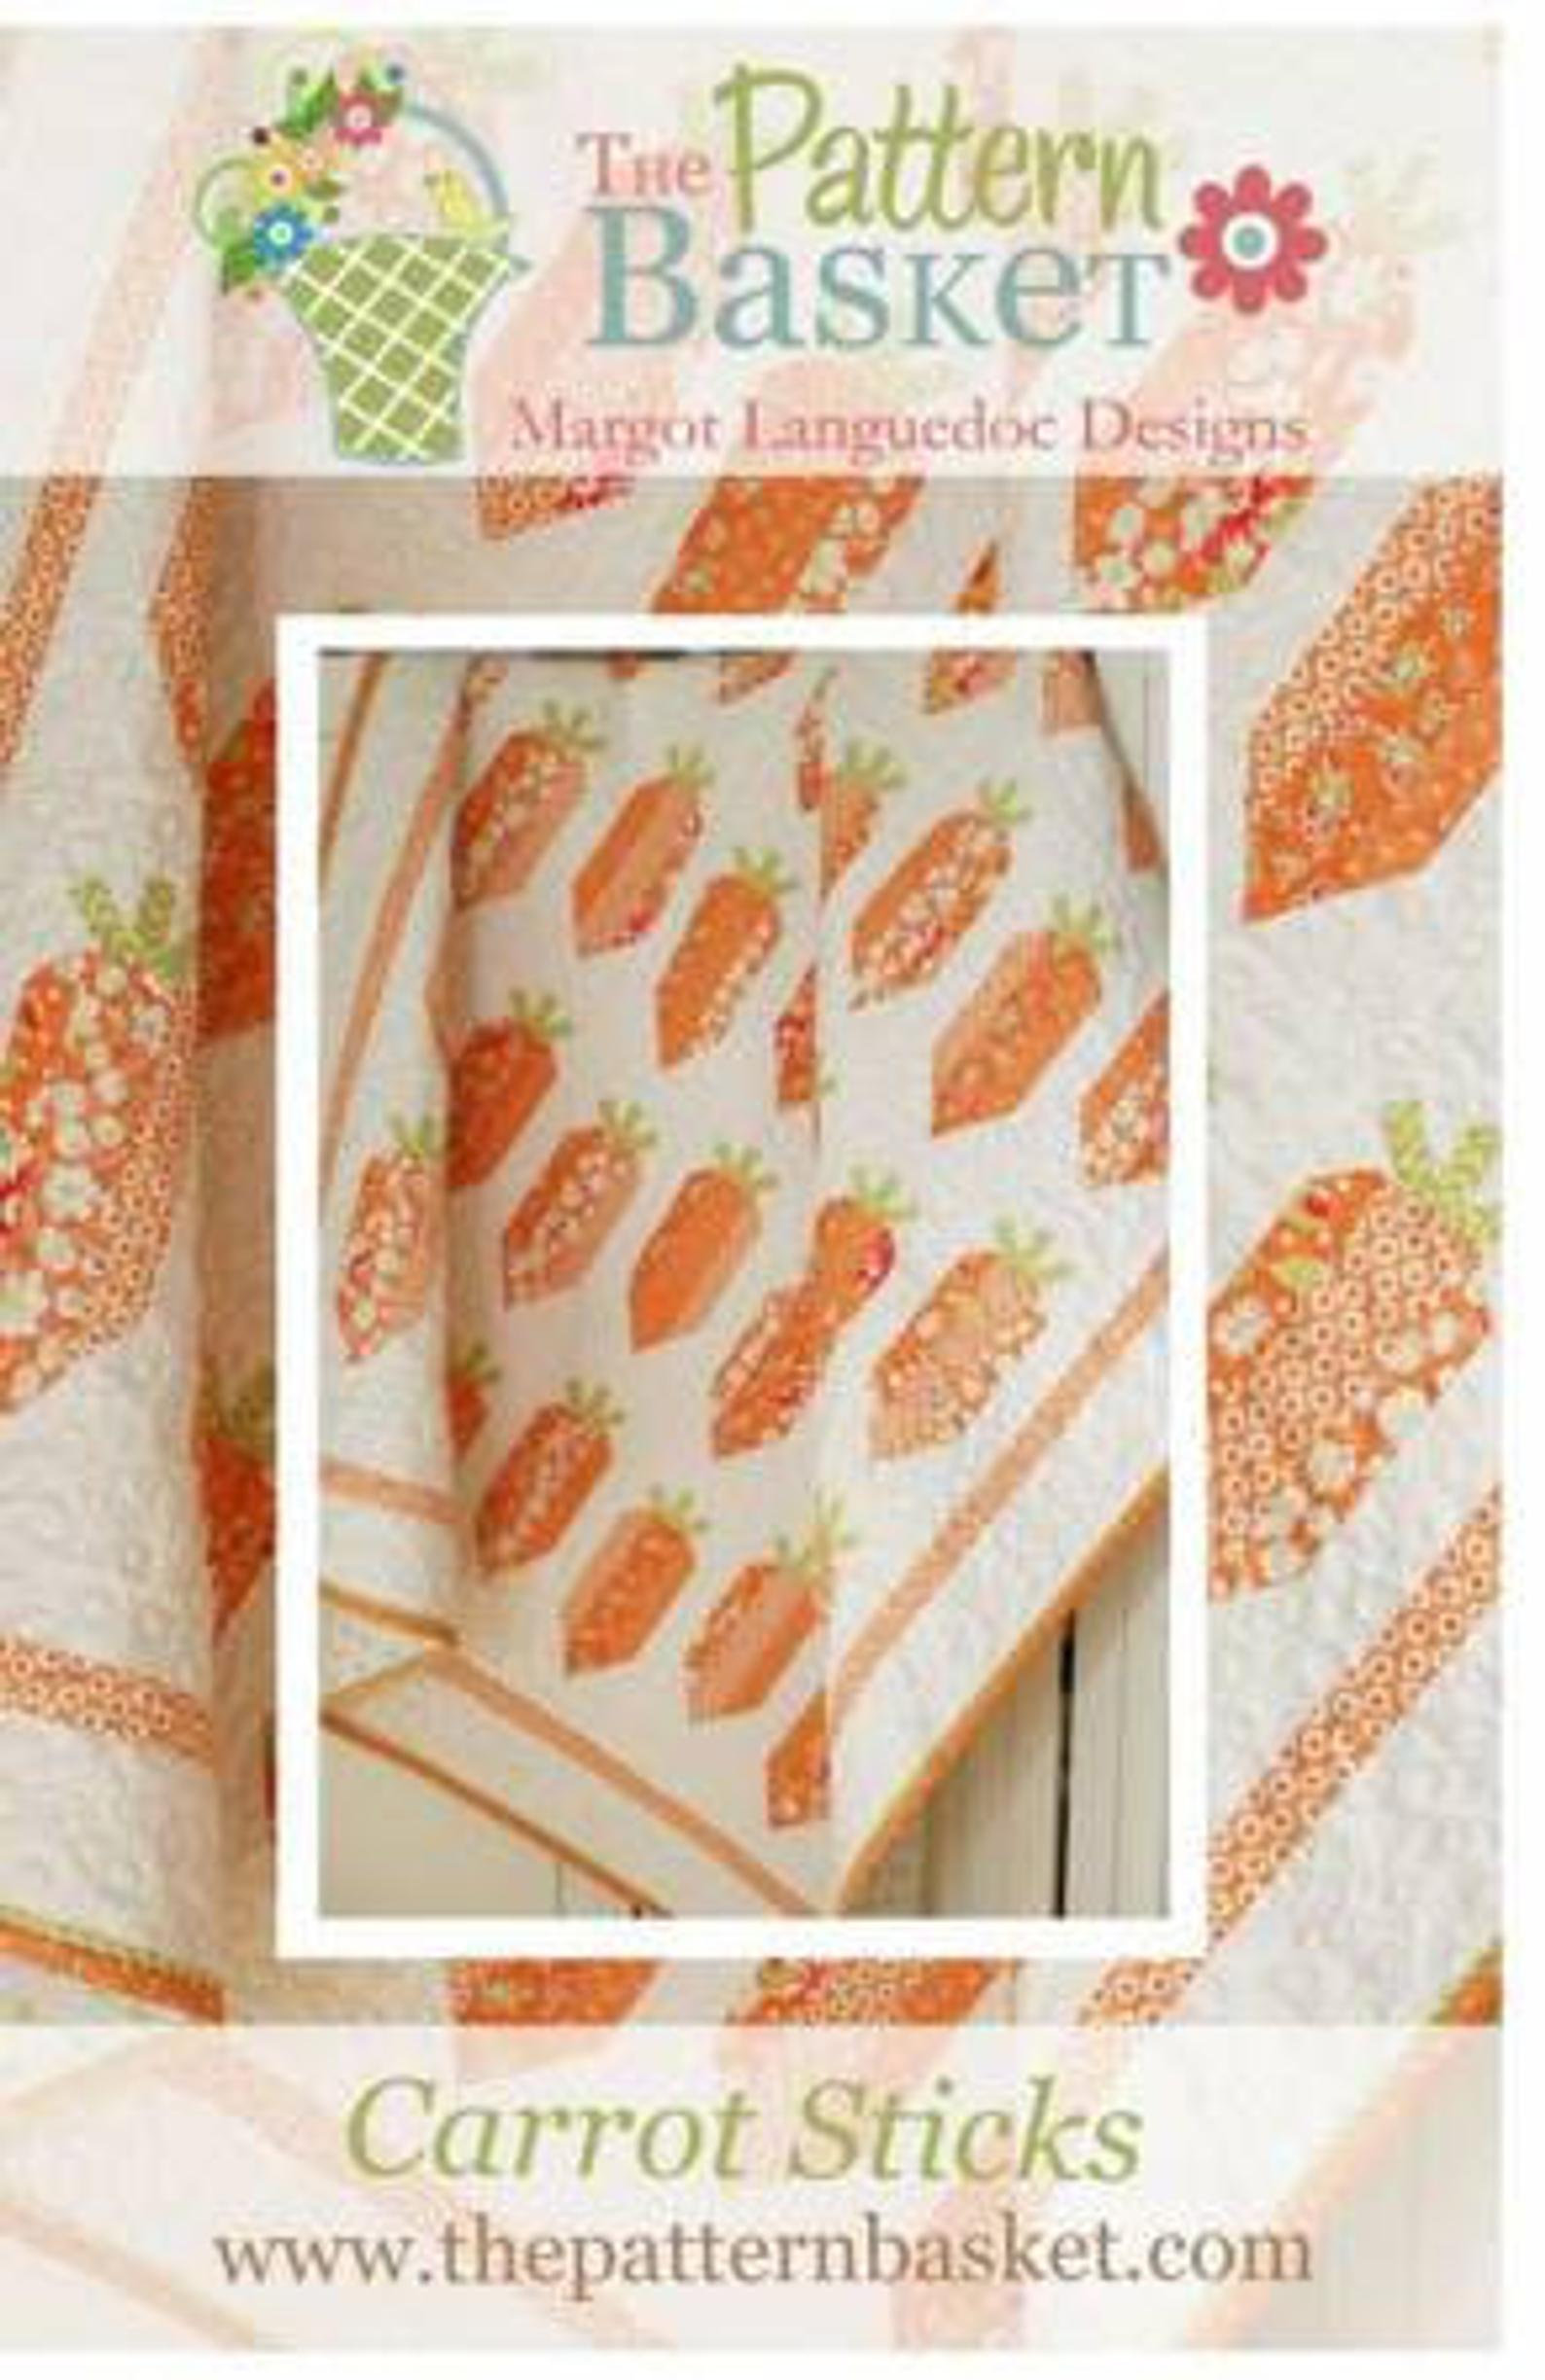 Carrot Sticks Quilt Pattern by The Pattern Basket Margot Languedoc